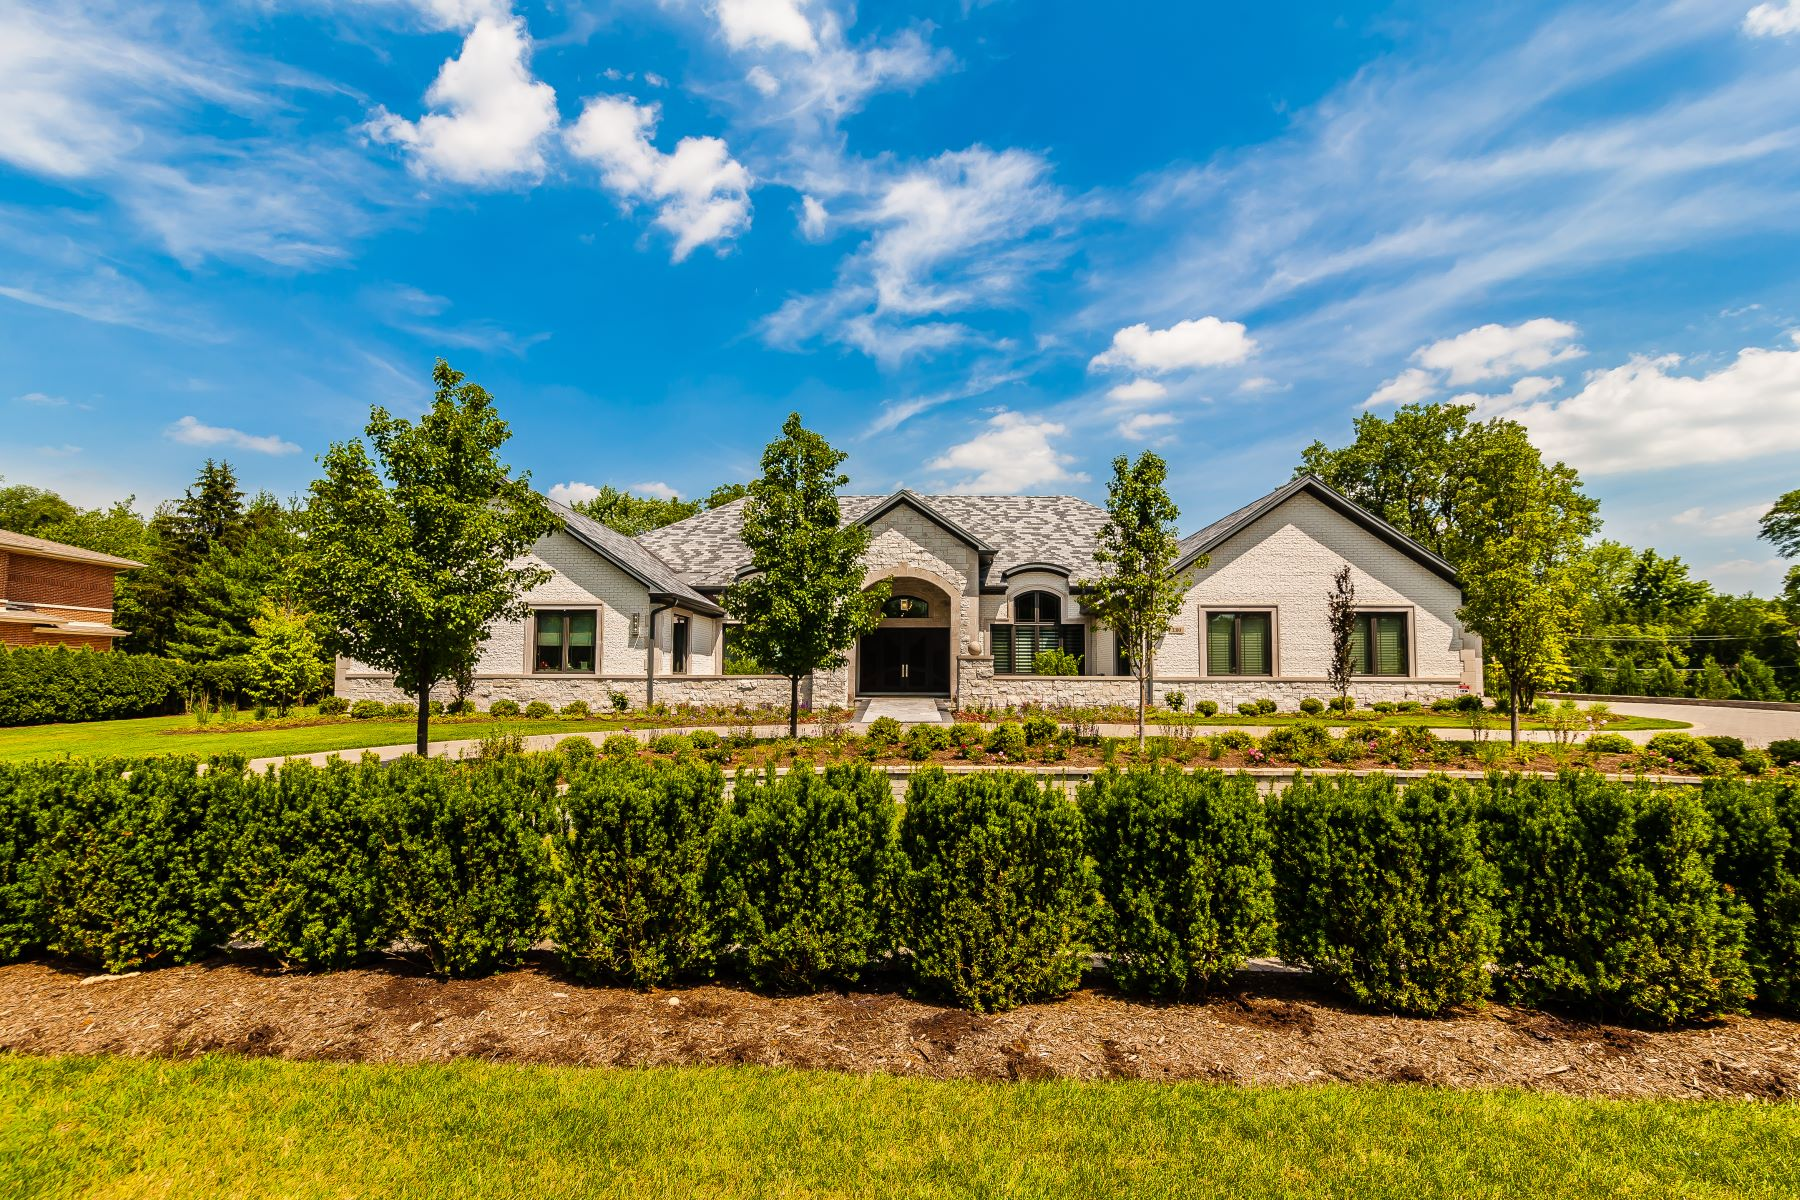 Single Family Homes for Active at Spectacular Northbrook Home 3310 Sunset Trail Northbrook, Illinois 60062 United States